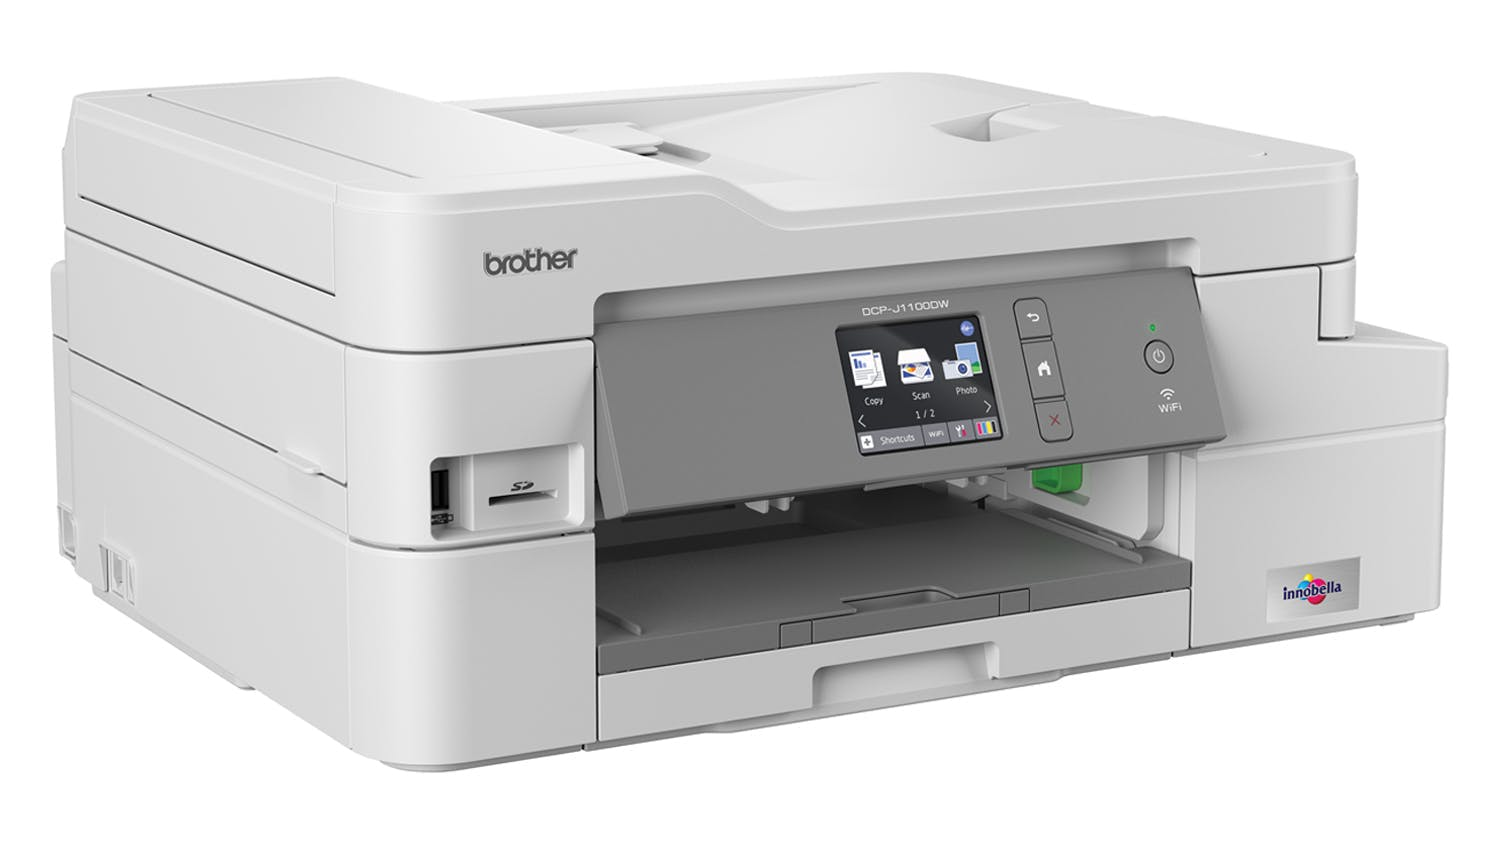 Brother DCP-J1100DW Inkjet All-in-One Printer